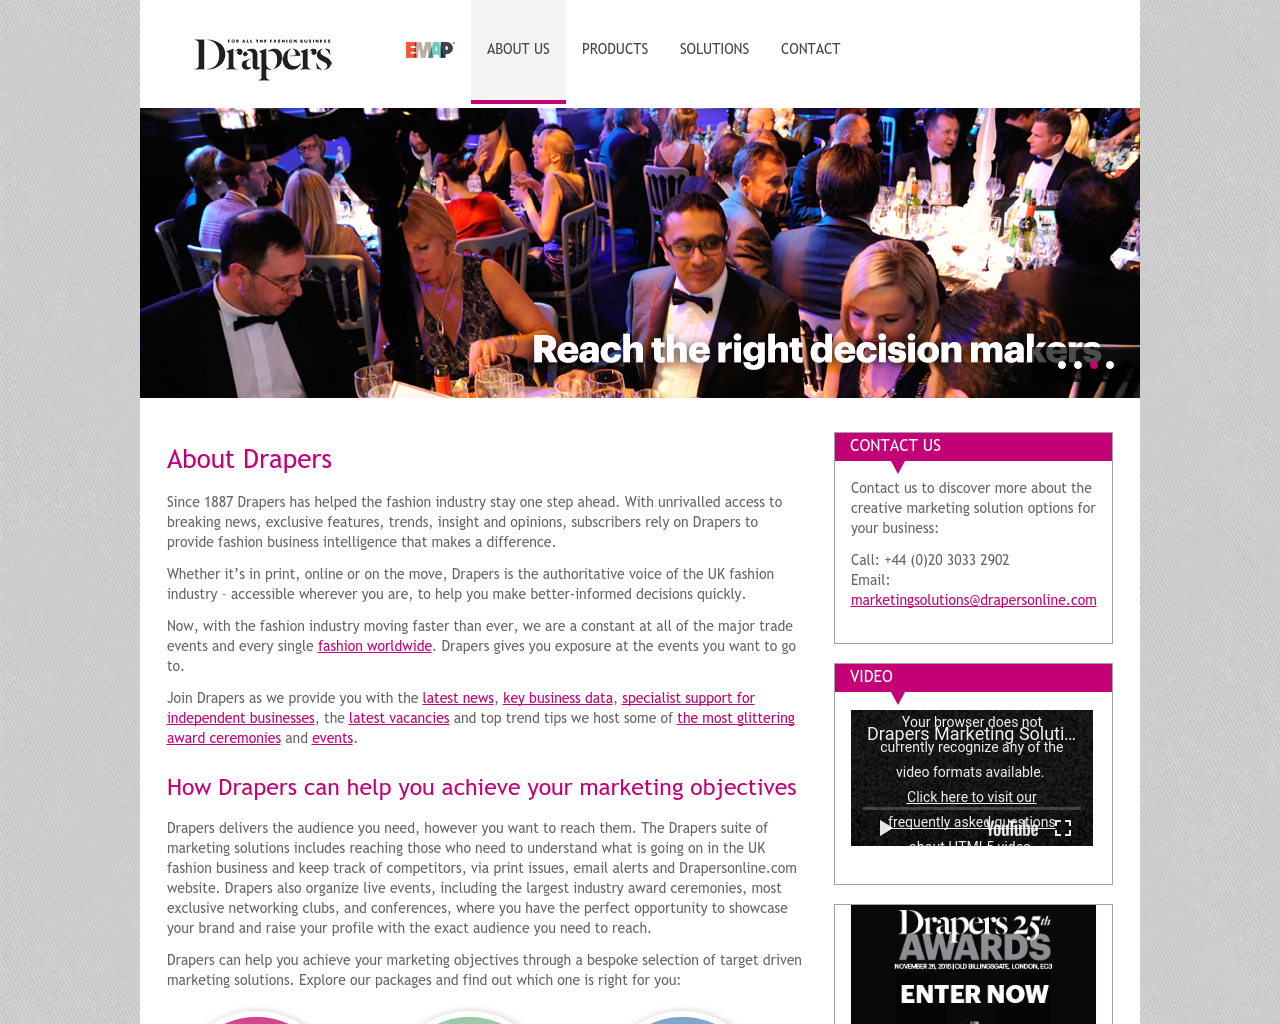 Drapers-Advertising-Reviews-Pricing